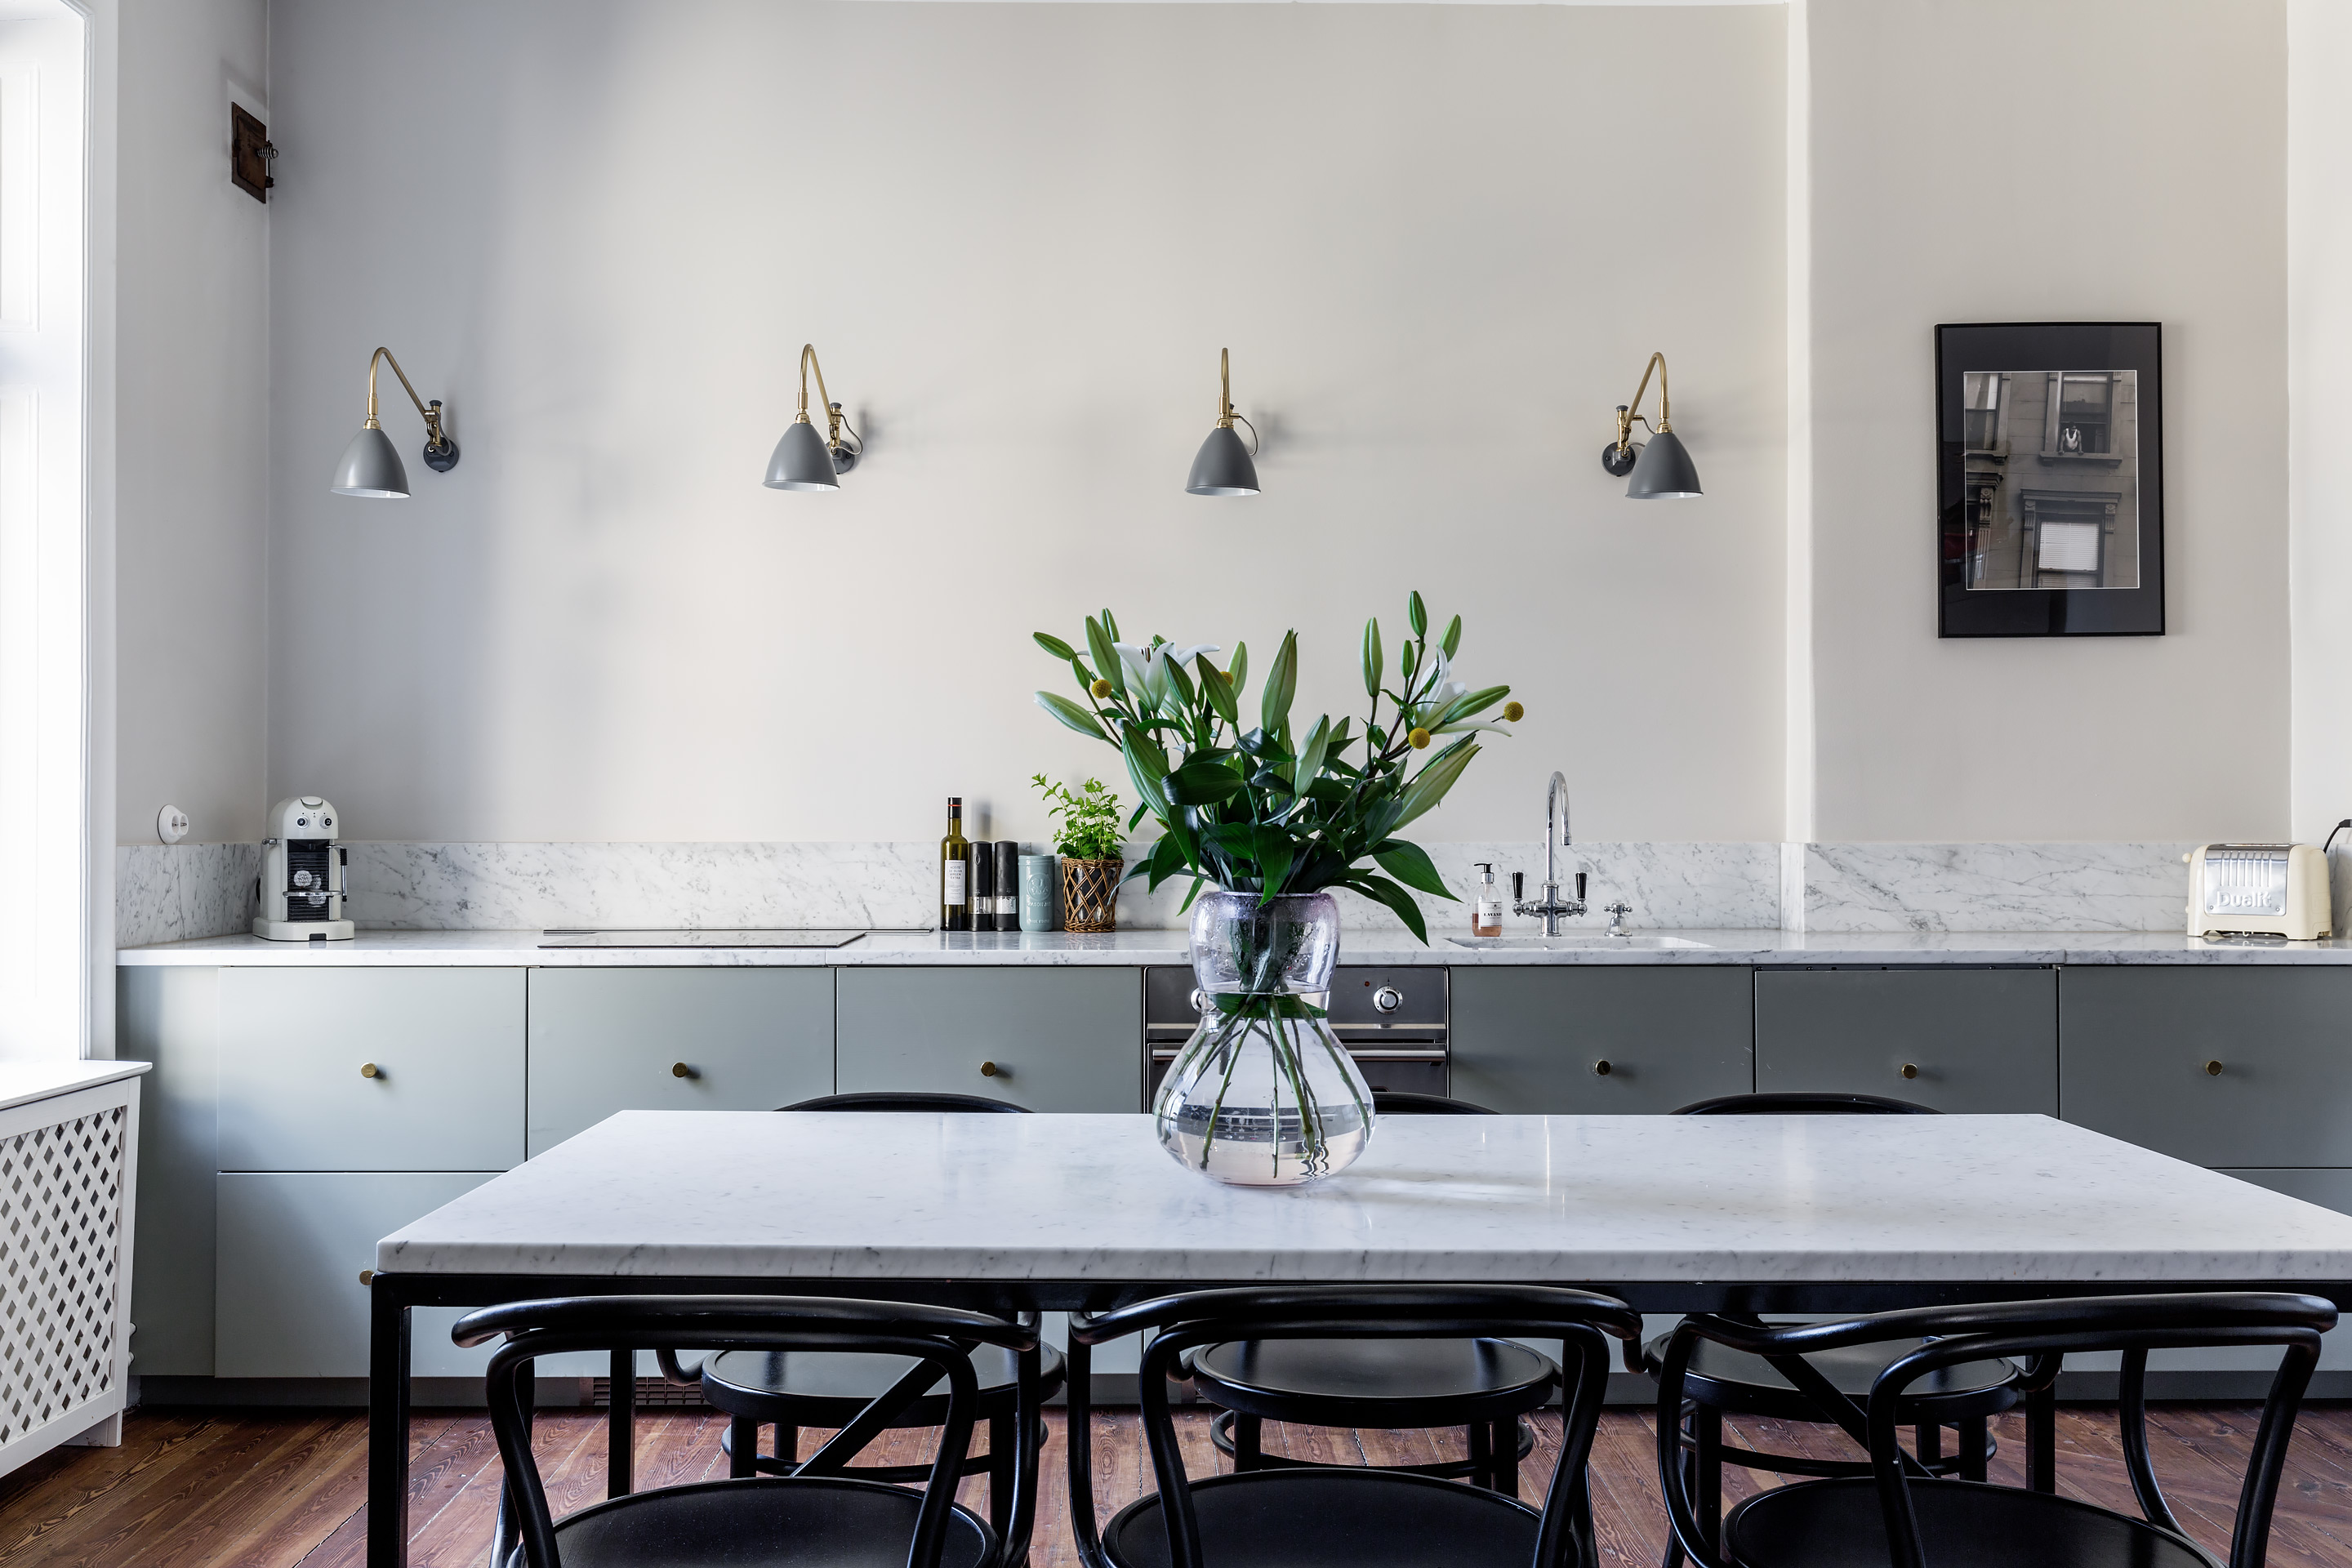 Stylish Kitchen Stylish Kitchen And Dining Space Coco Lapine Designcoco Lapine